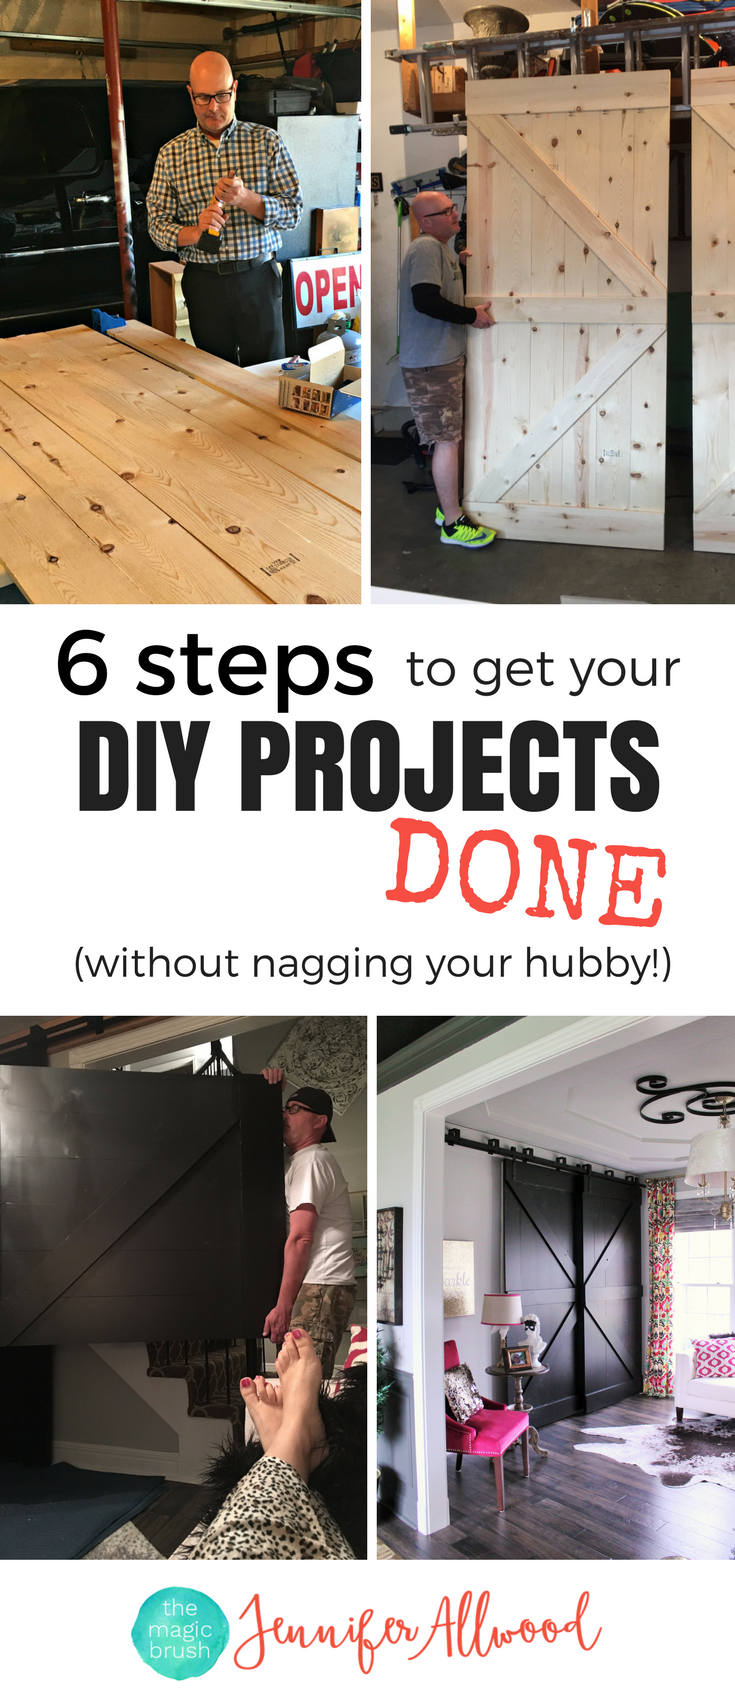 Einfaches hausfensterdesign  steps to get your diy projects done without nagging your hubby